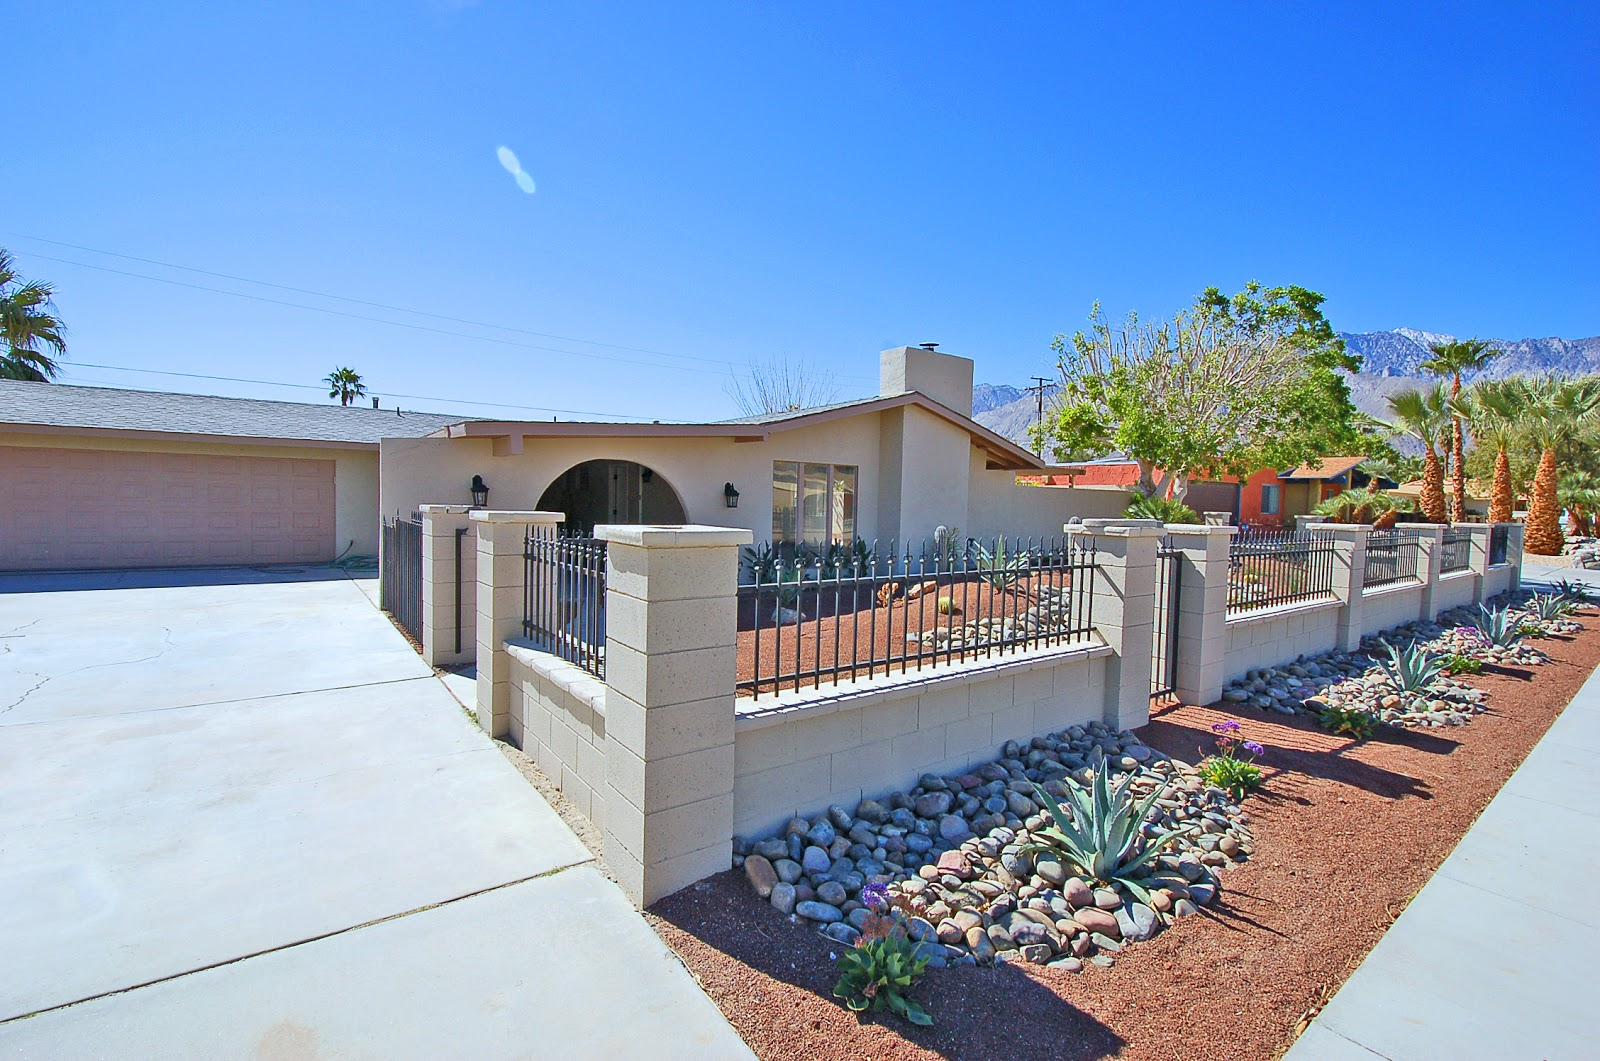 Russell hill palm springs area real estate palm springs for Property in palm springs